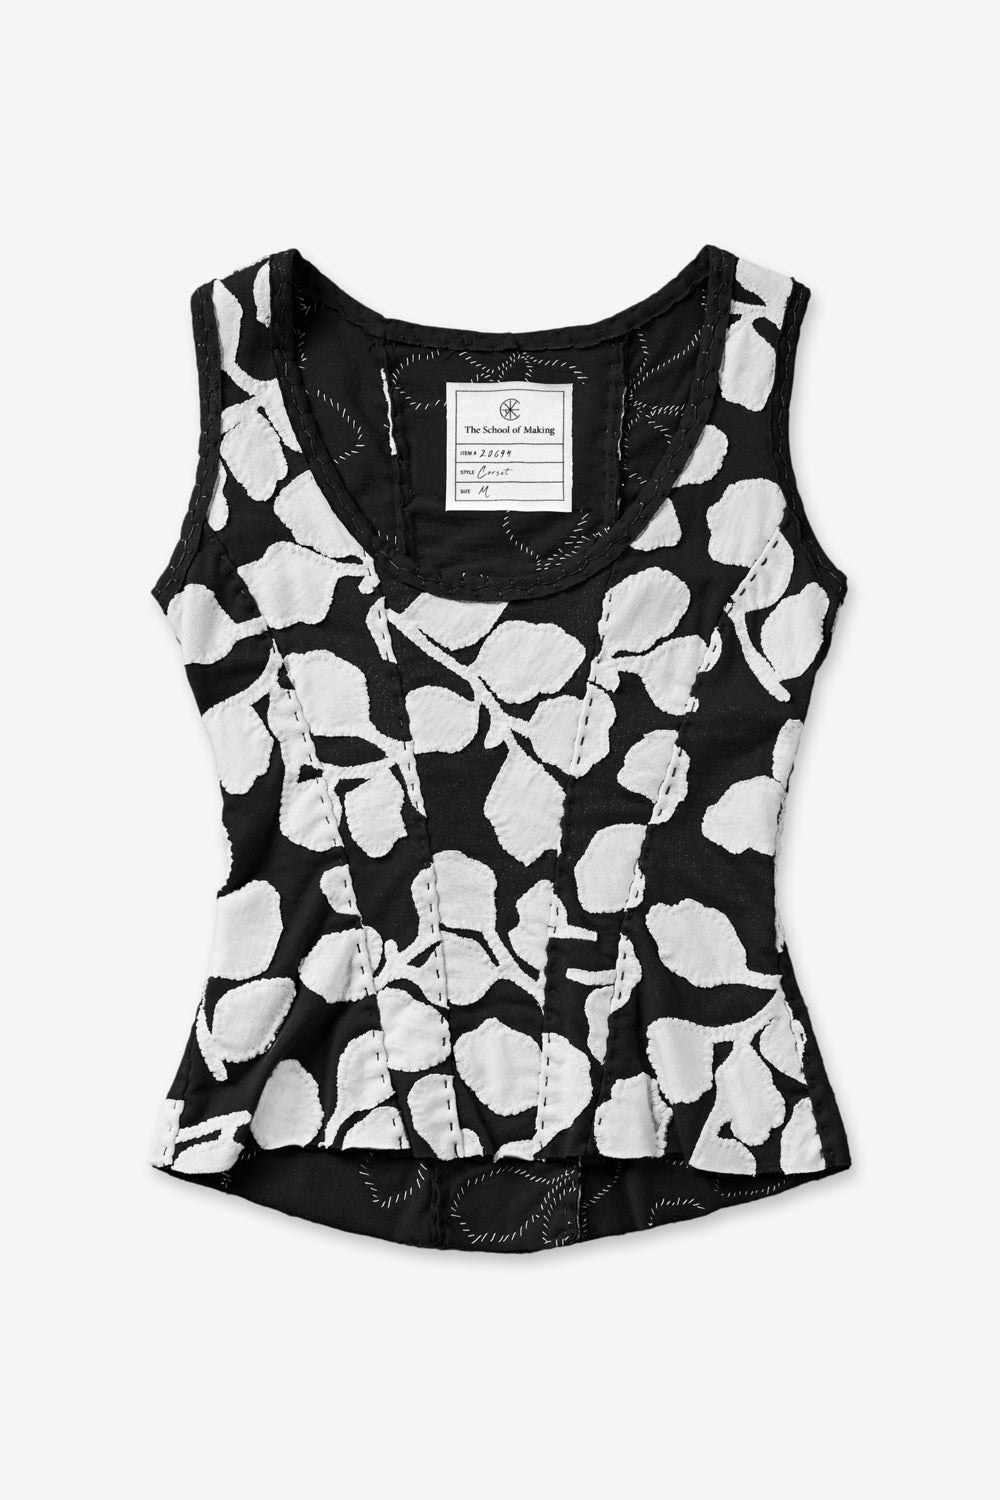 The School of Making New Leaves Corset in Black/White Leaves Pattern